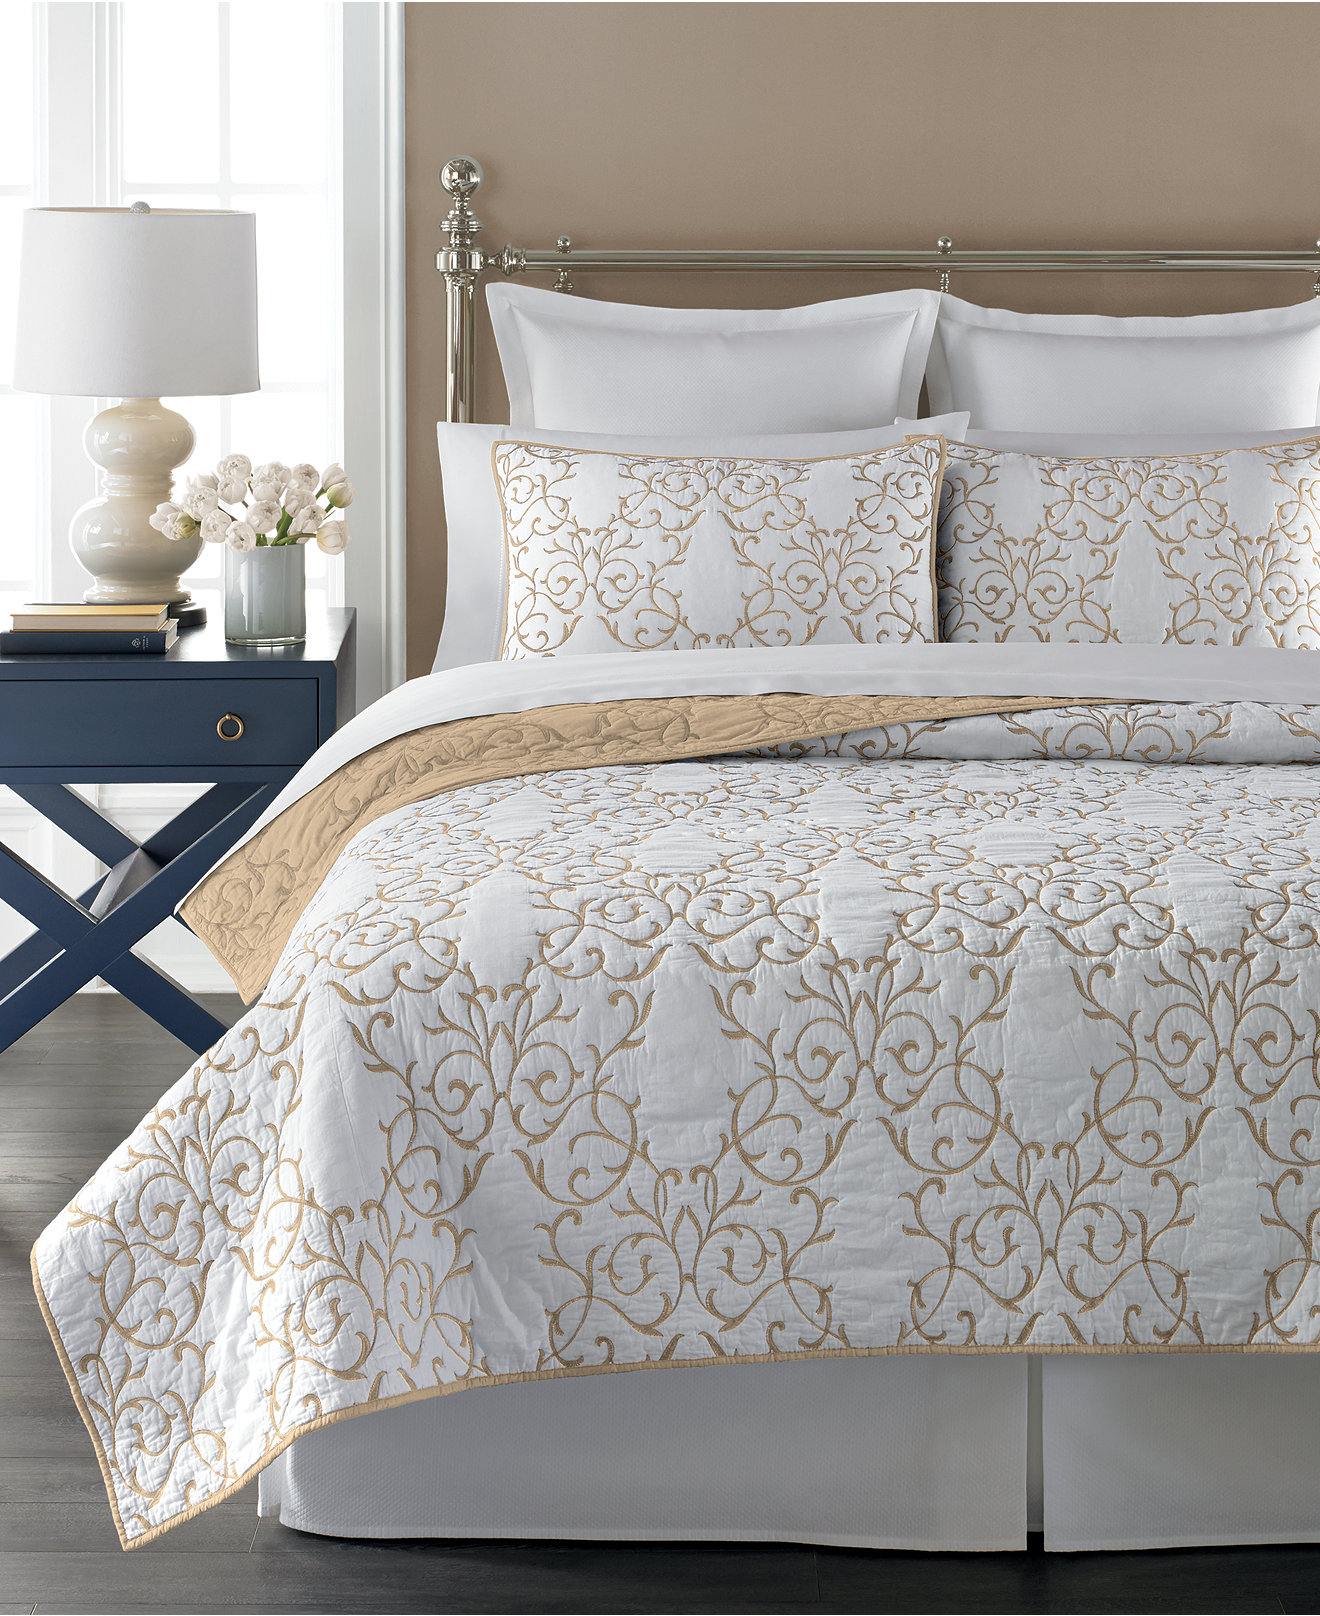 Martha Stewart Collection Chateau Latte Quilts  Created for Macy s   Martha Stewart Collection Chateau Latte Quilts  Created for Macy s   Quilts    Bedspreads   Bed   Bath   Macy s. Bedroom Quilts. Home Design Ideas